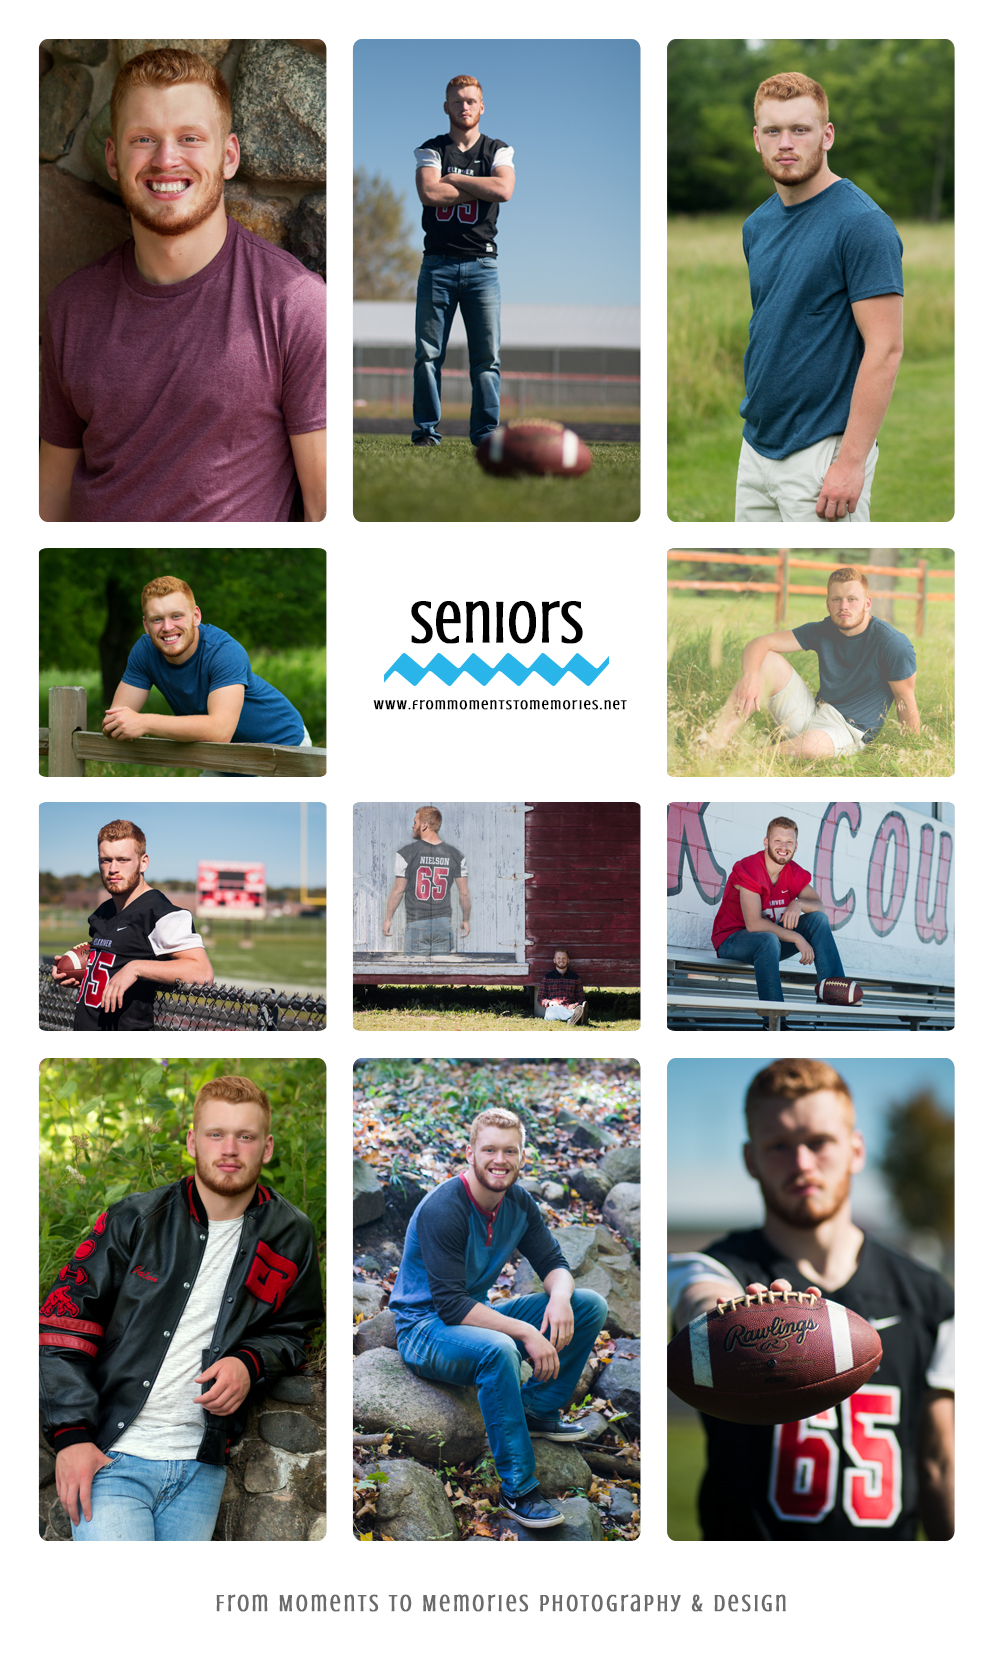 elk_river_senior_photographer_from_moments_to_memories_photography_by_sheila_skogen_modern_professional_senior_pictures